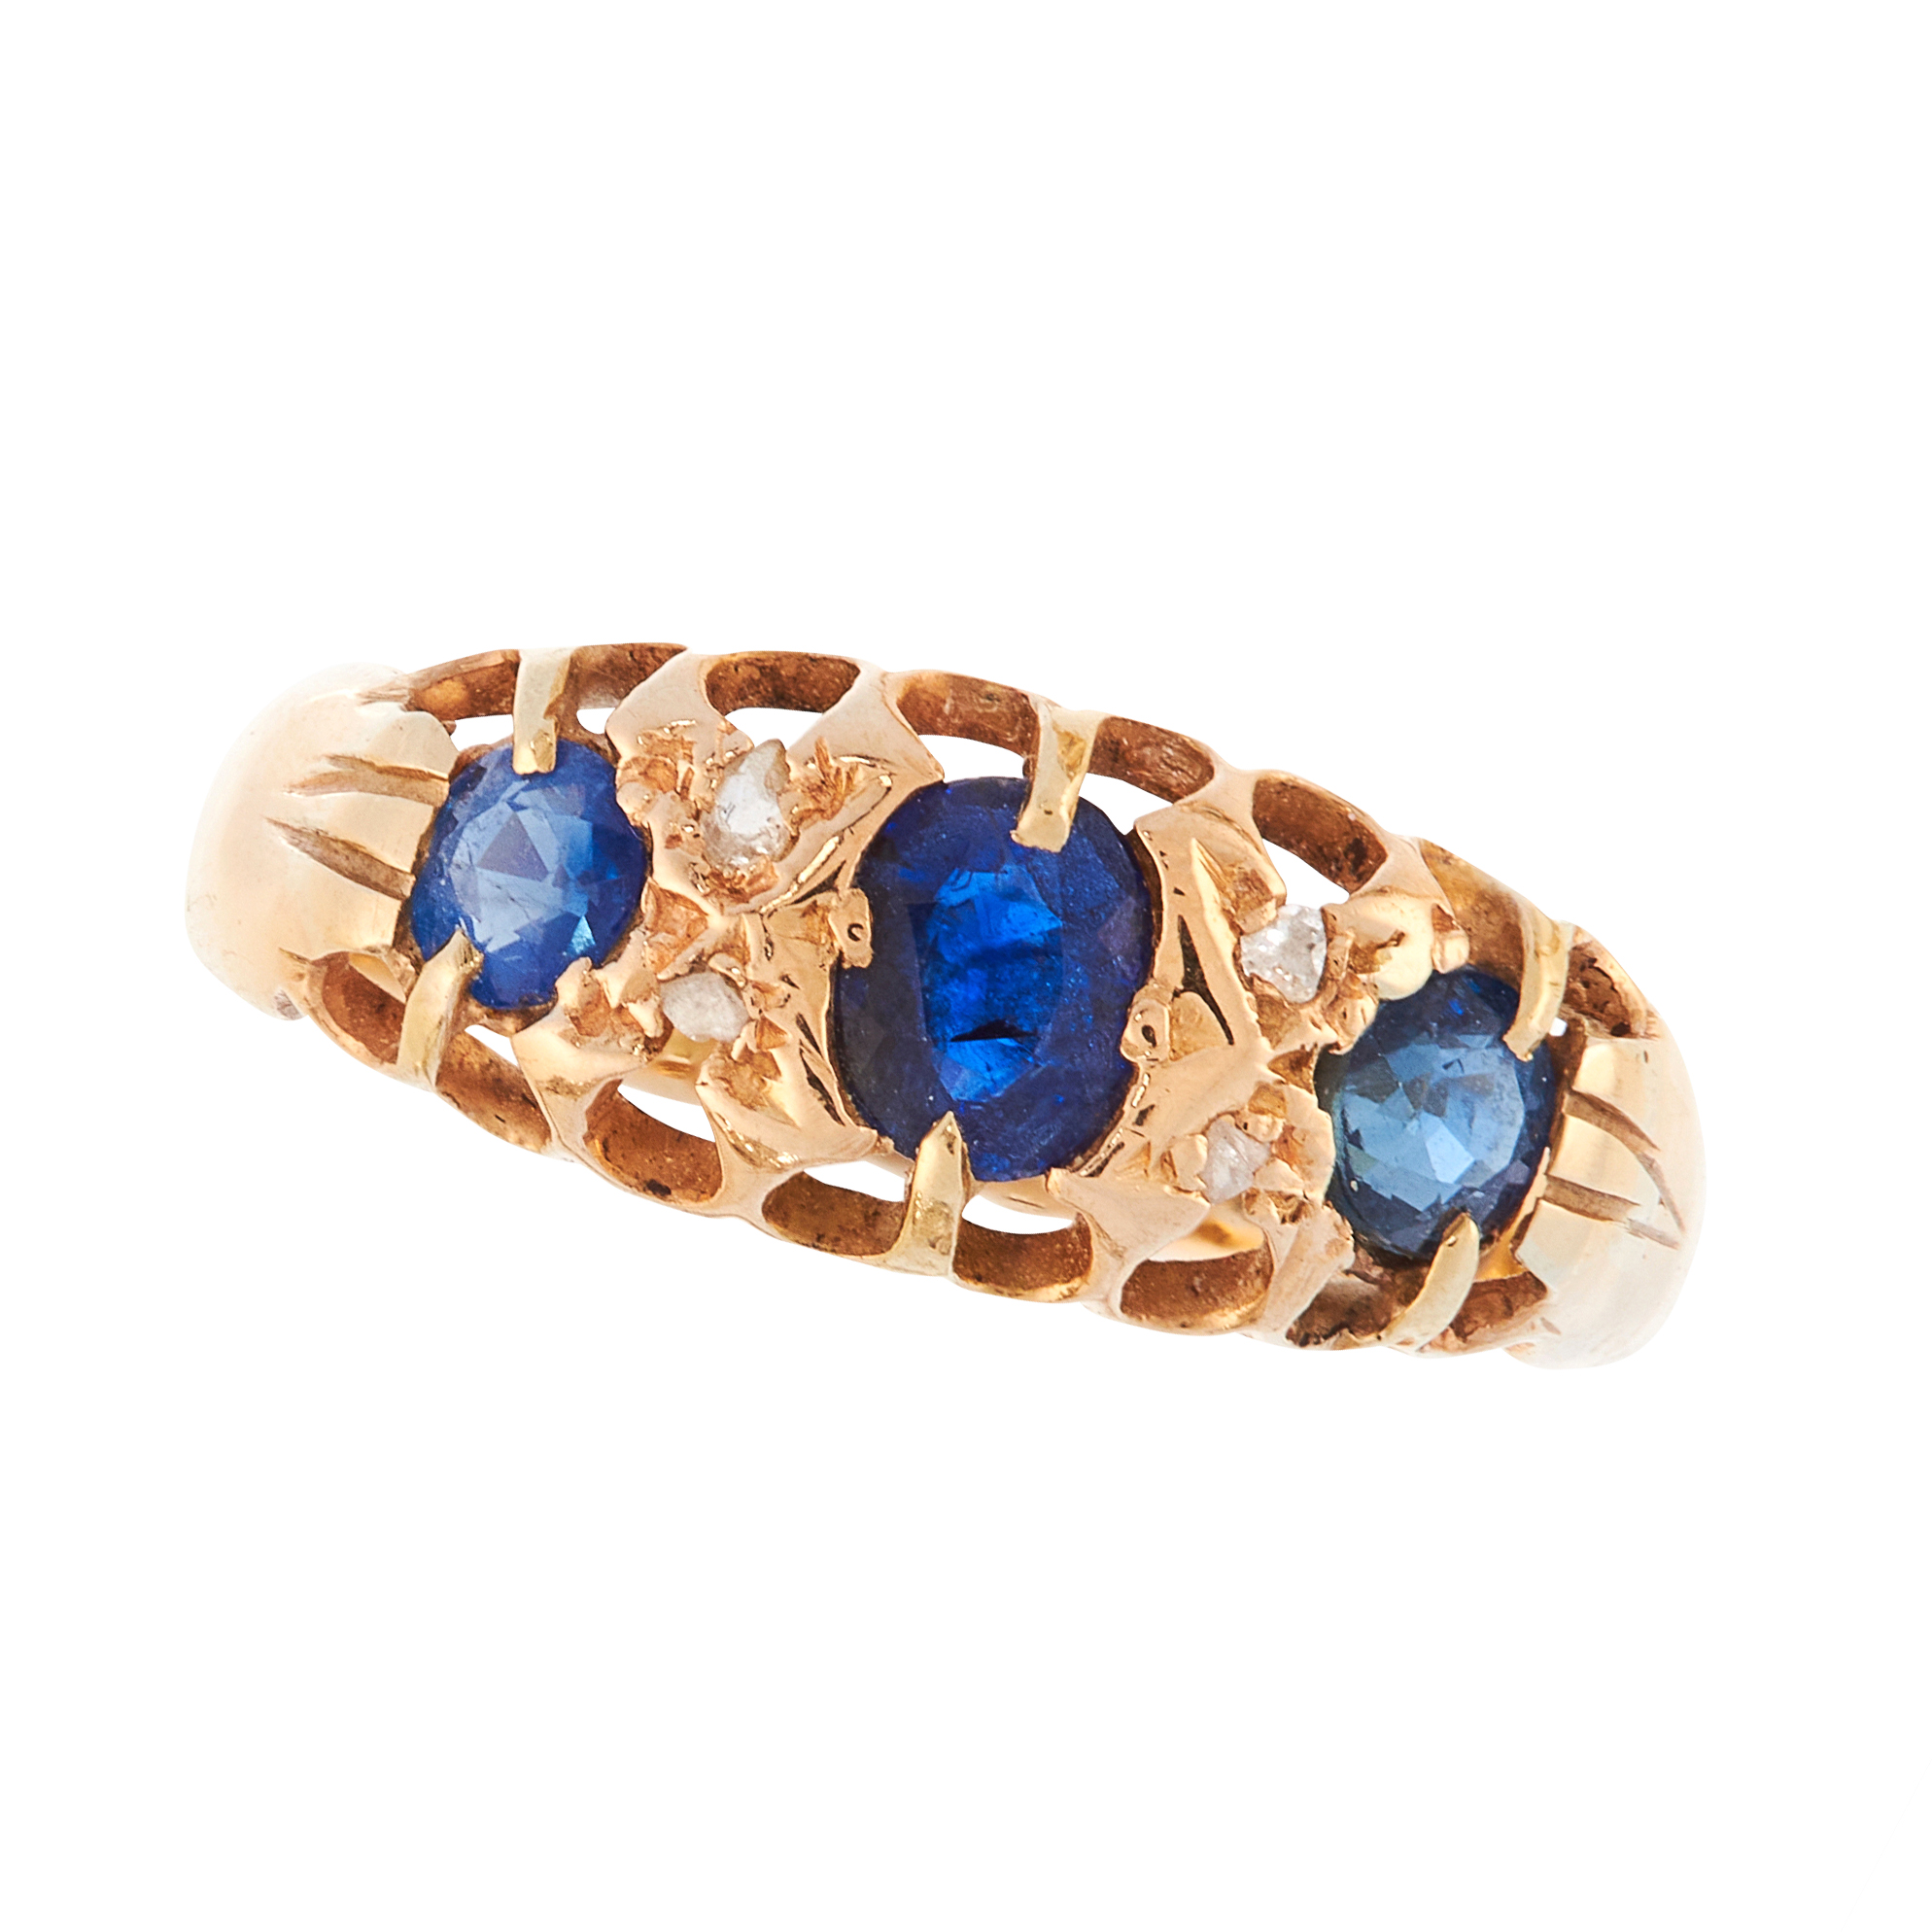 AN ANTIQUE SAPPHIRE AND DIAMOND DRESS RING, 1910 in 18ct yellow gold, set with a trio of graduated